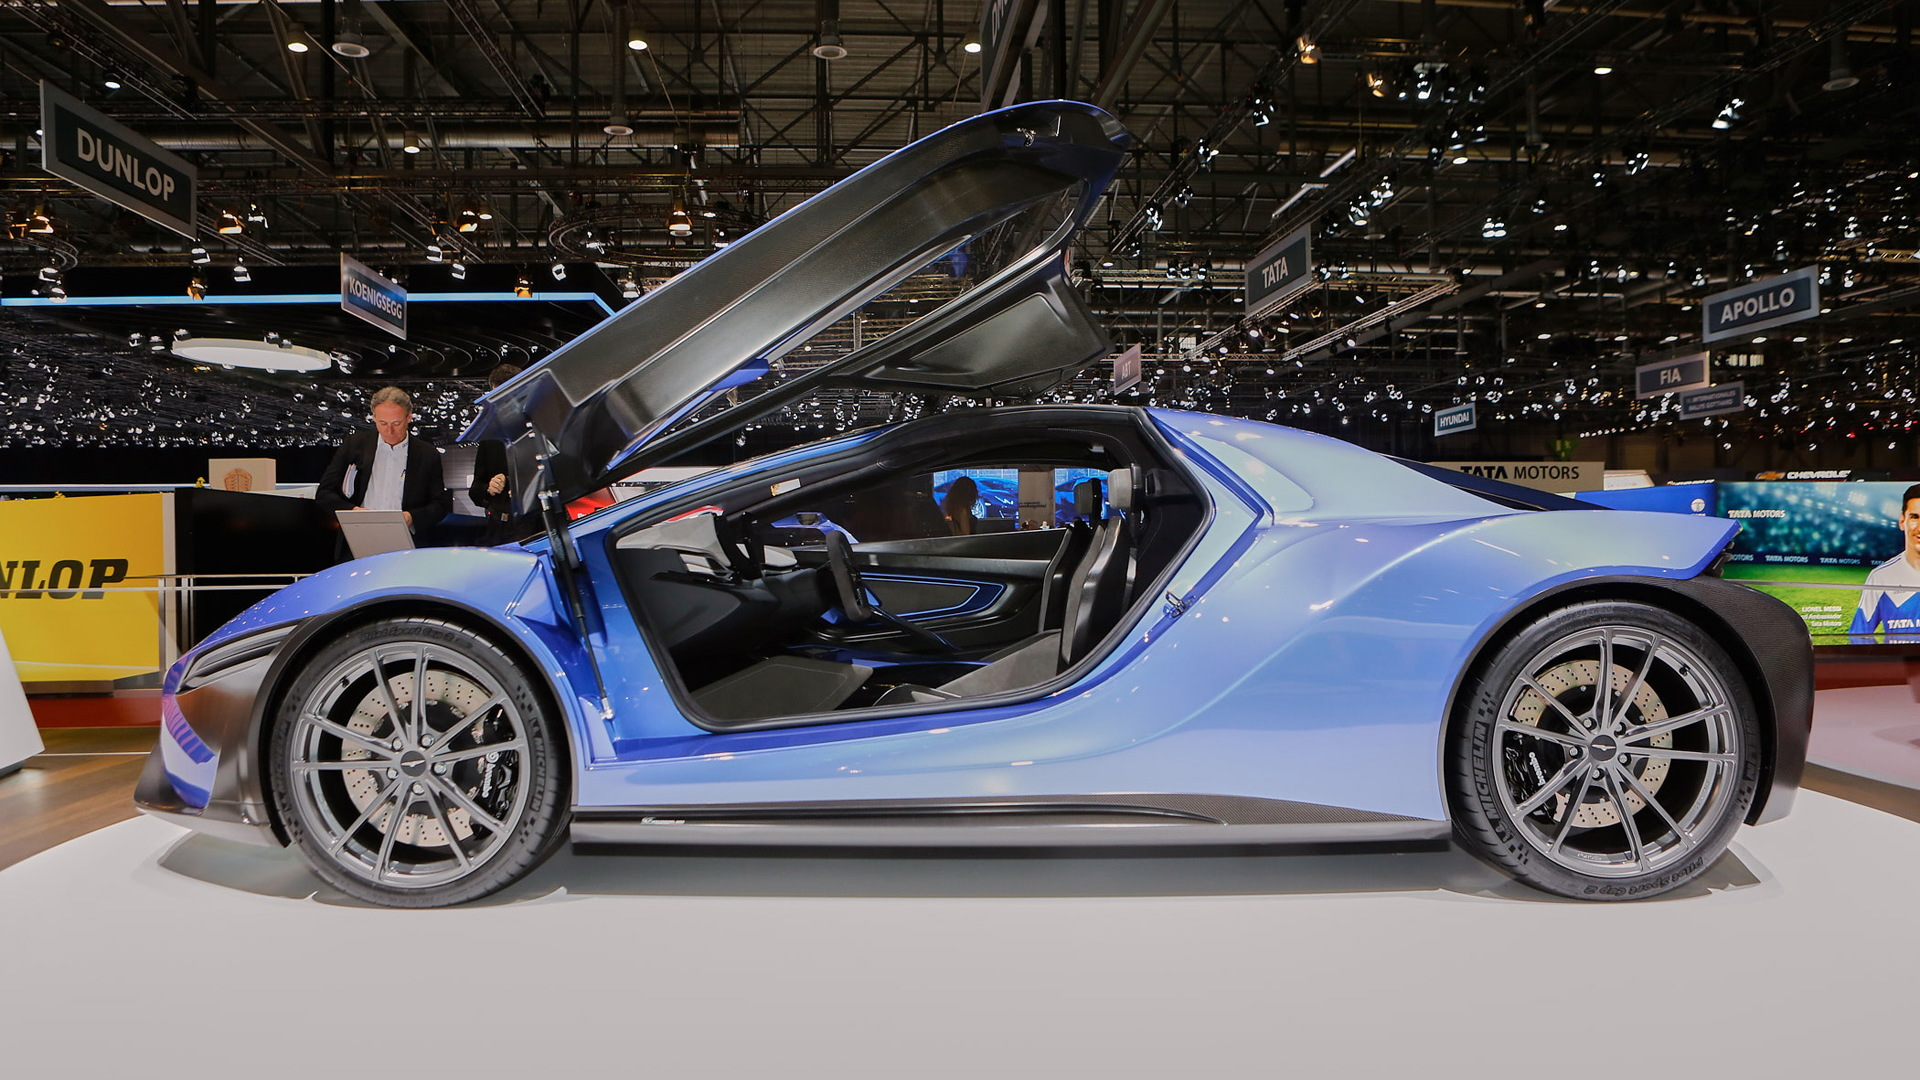 Techrules Looks For European Site To Build New Supercar